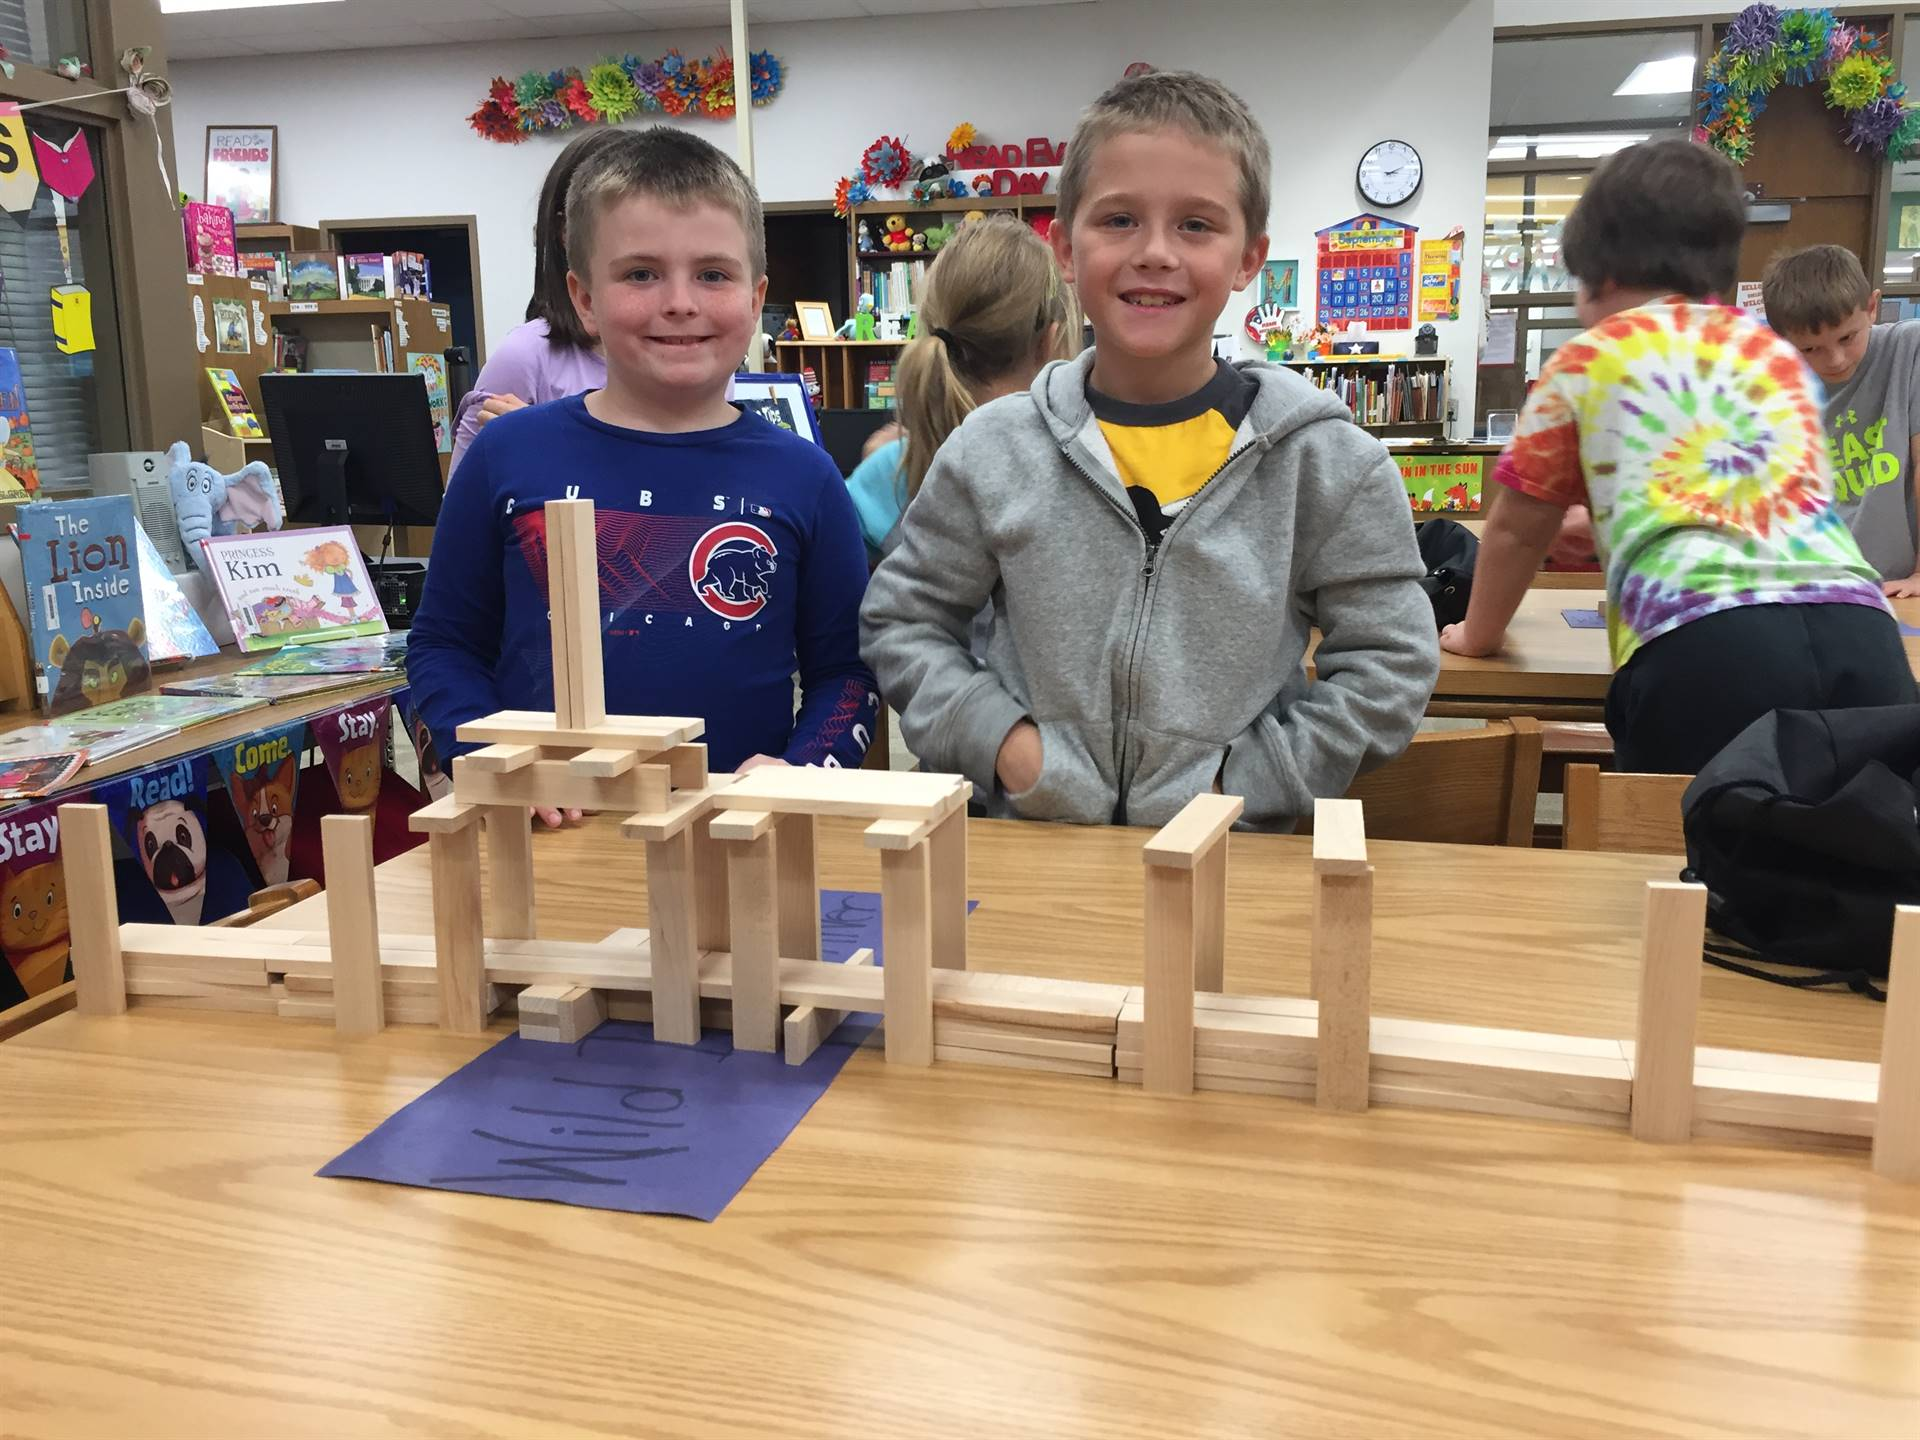 Two Second Graders with their KEVA Plank Bridge